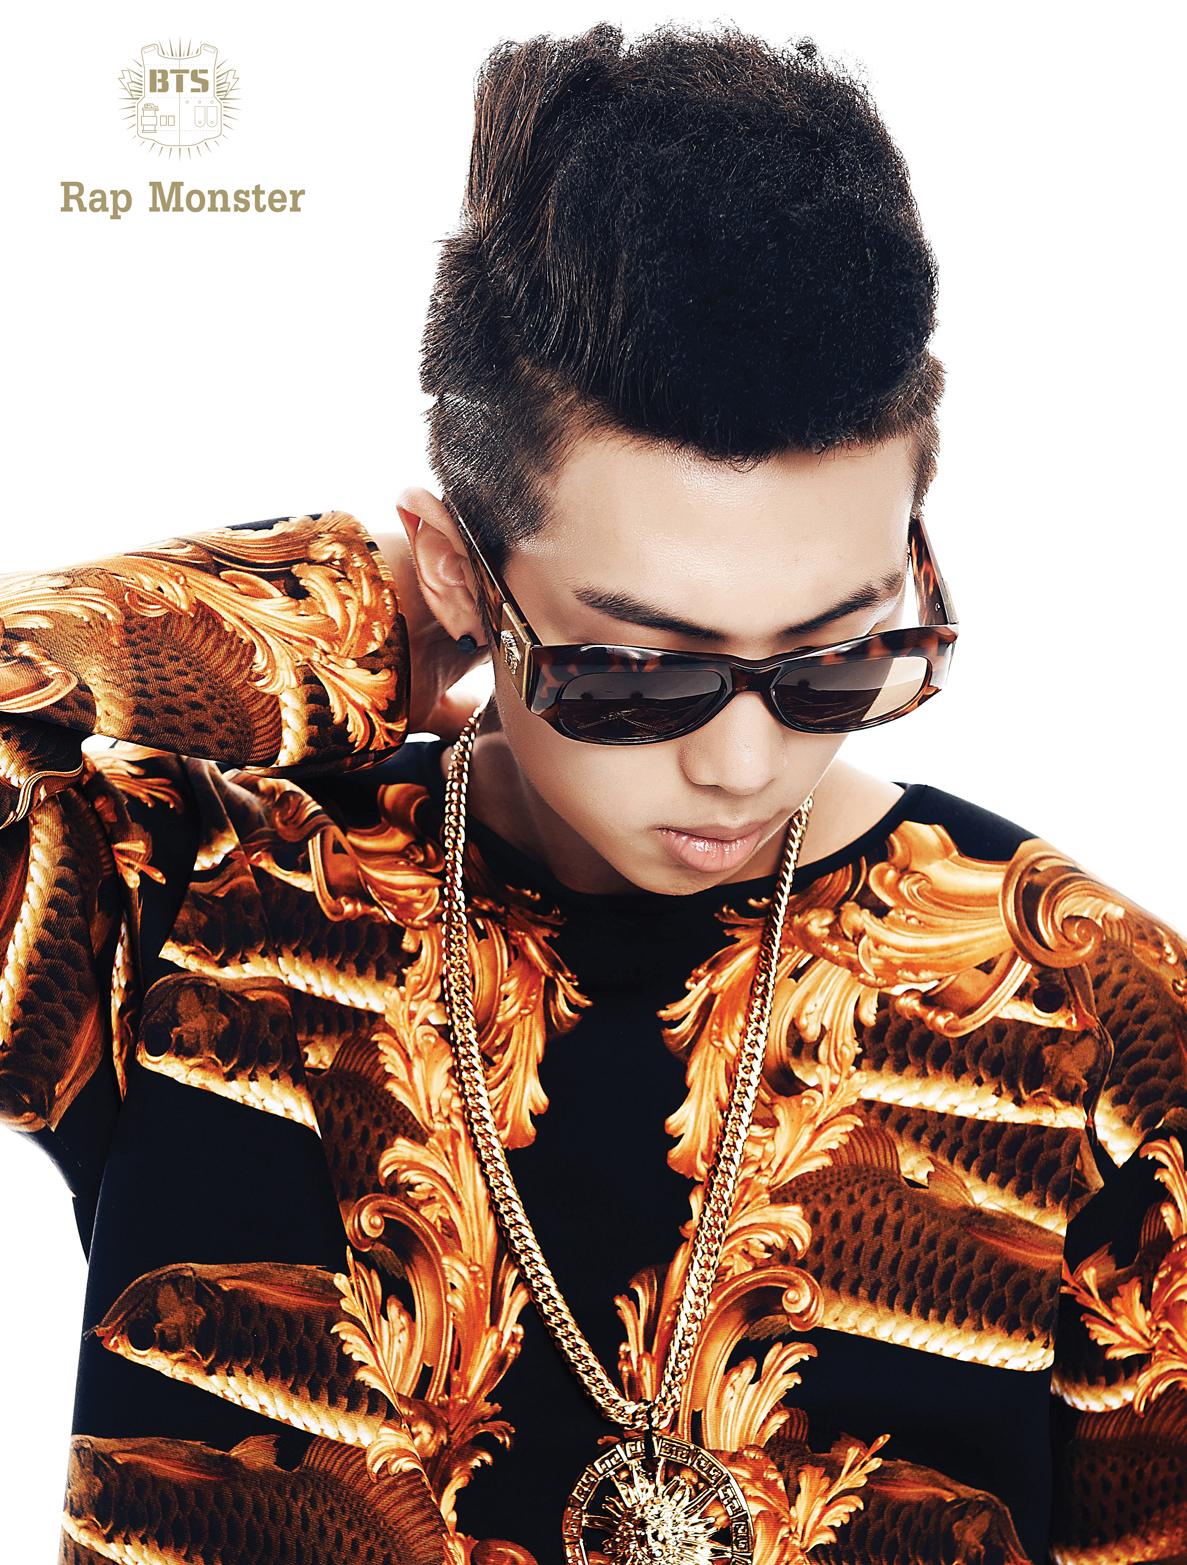 Rap Monster Android Iphone Wallpaper 1786 Asiachan Kpop Image Board